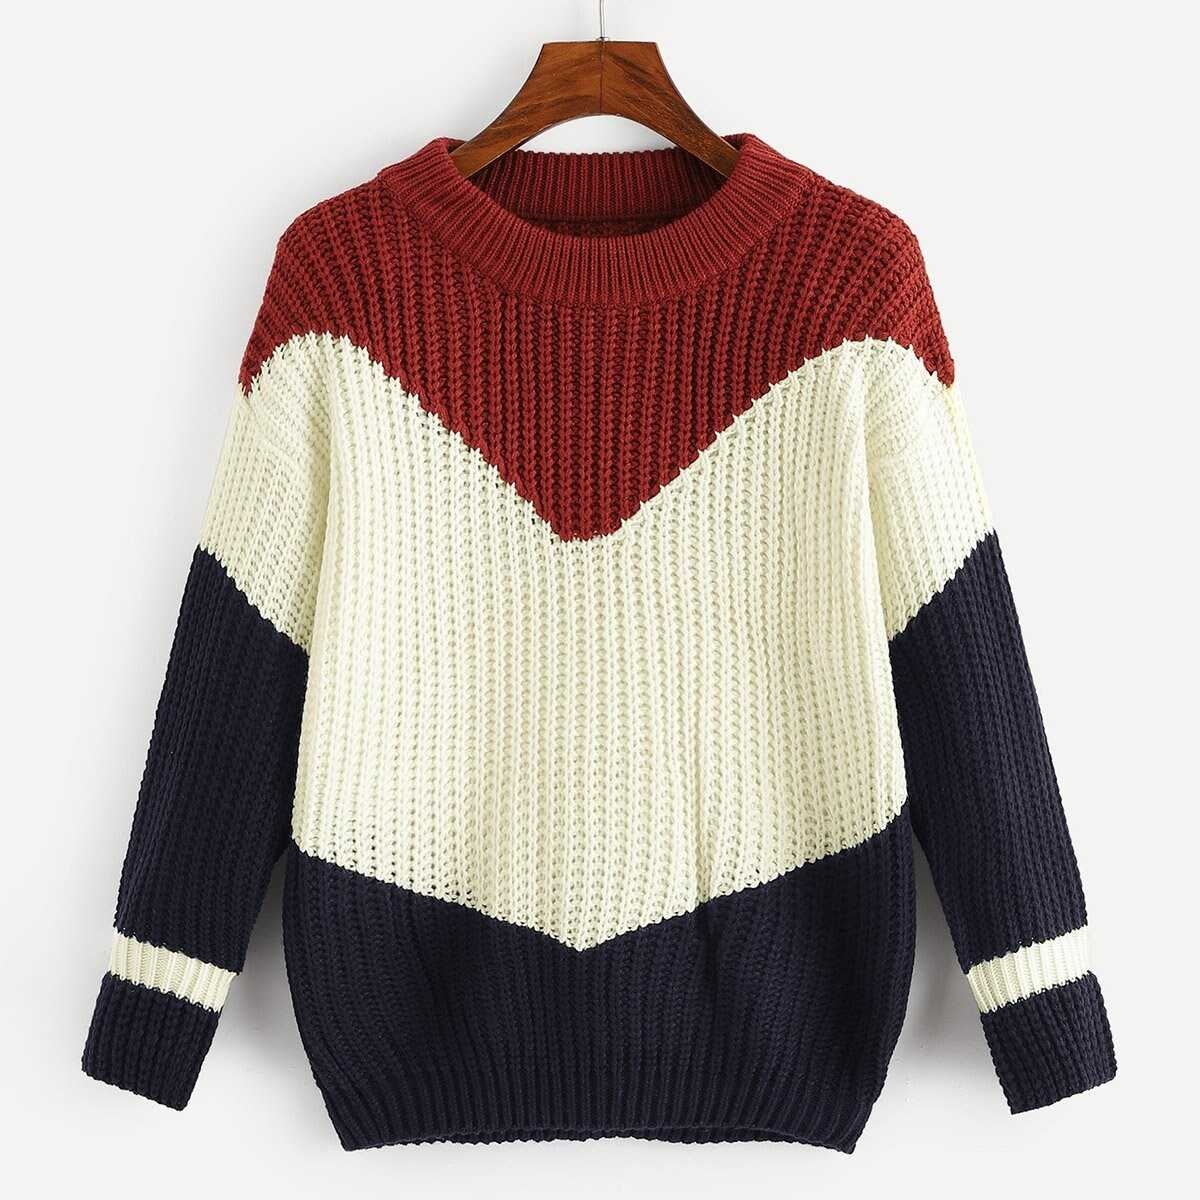 Color-Block Sweater in Multicolor by ROMWE on GOOFASH